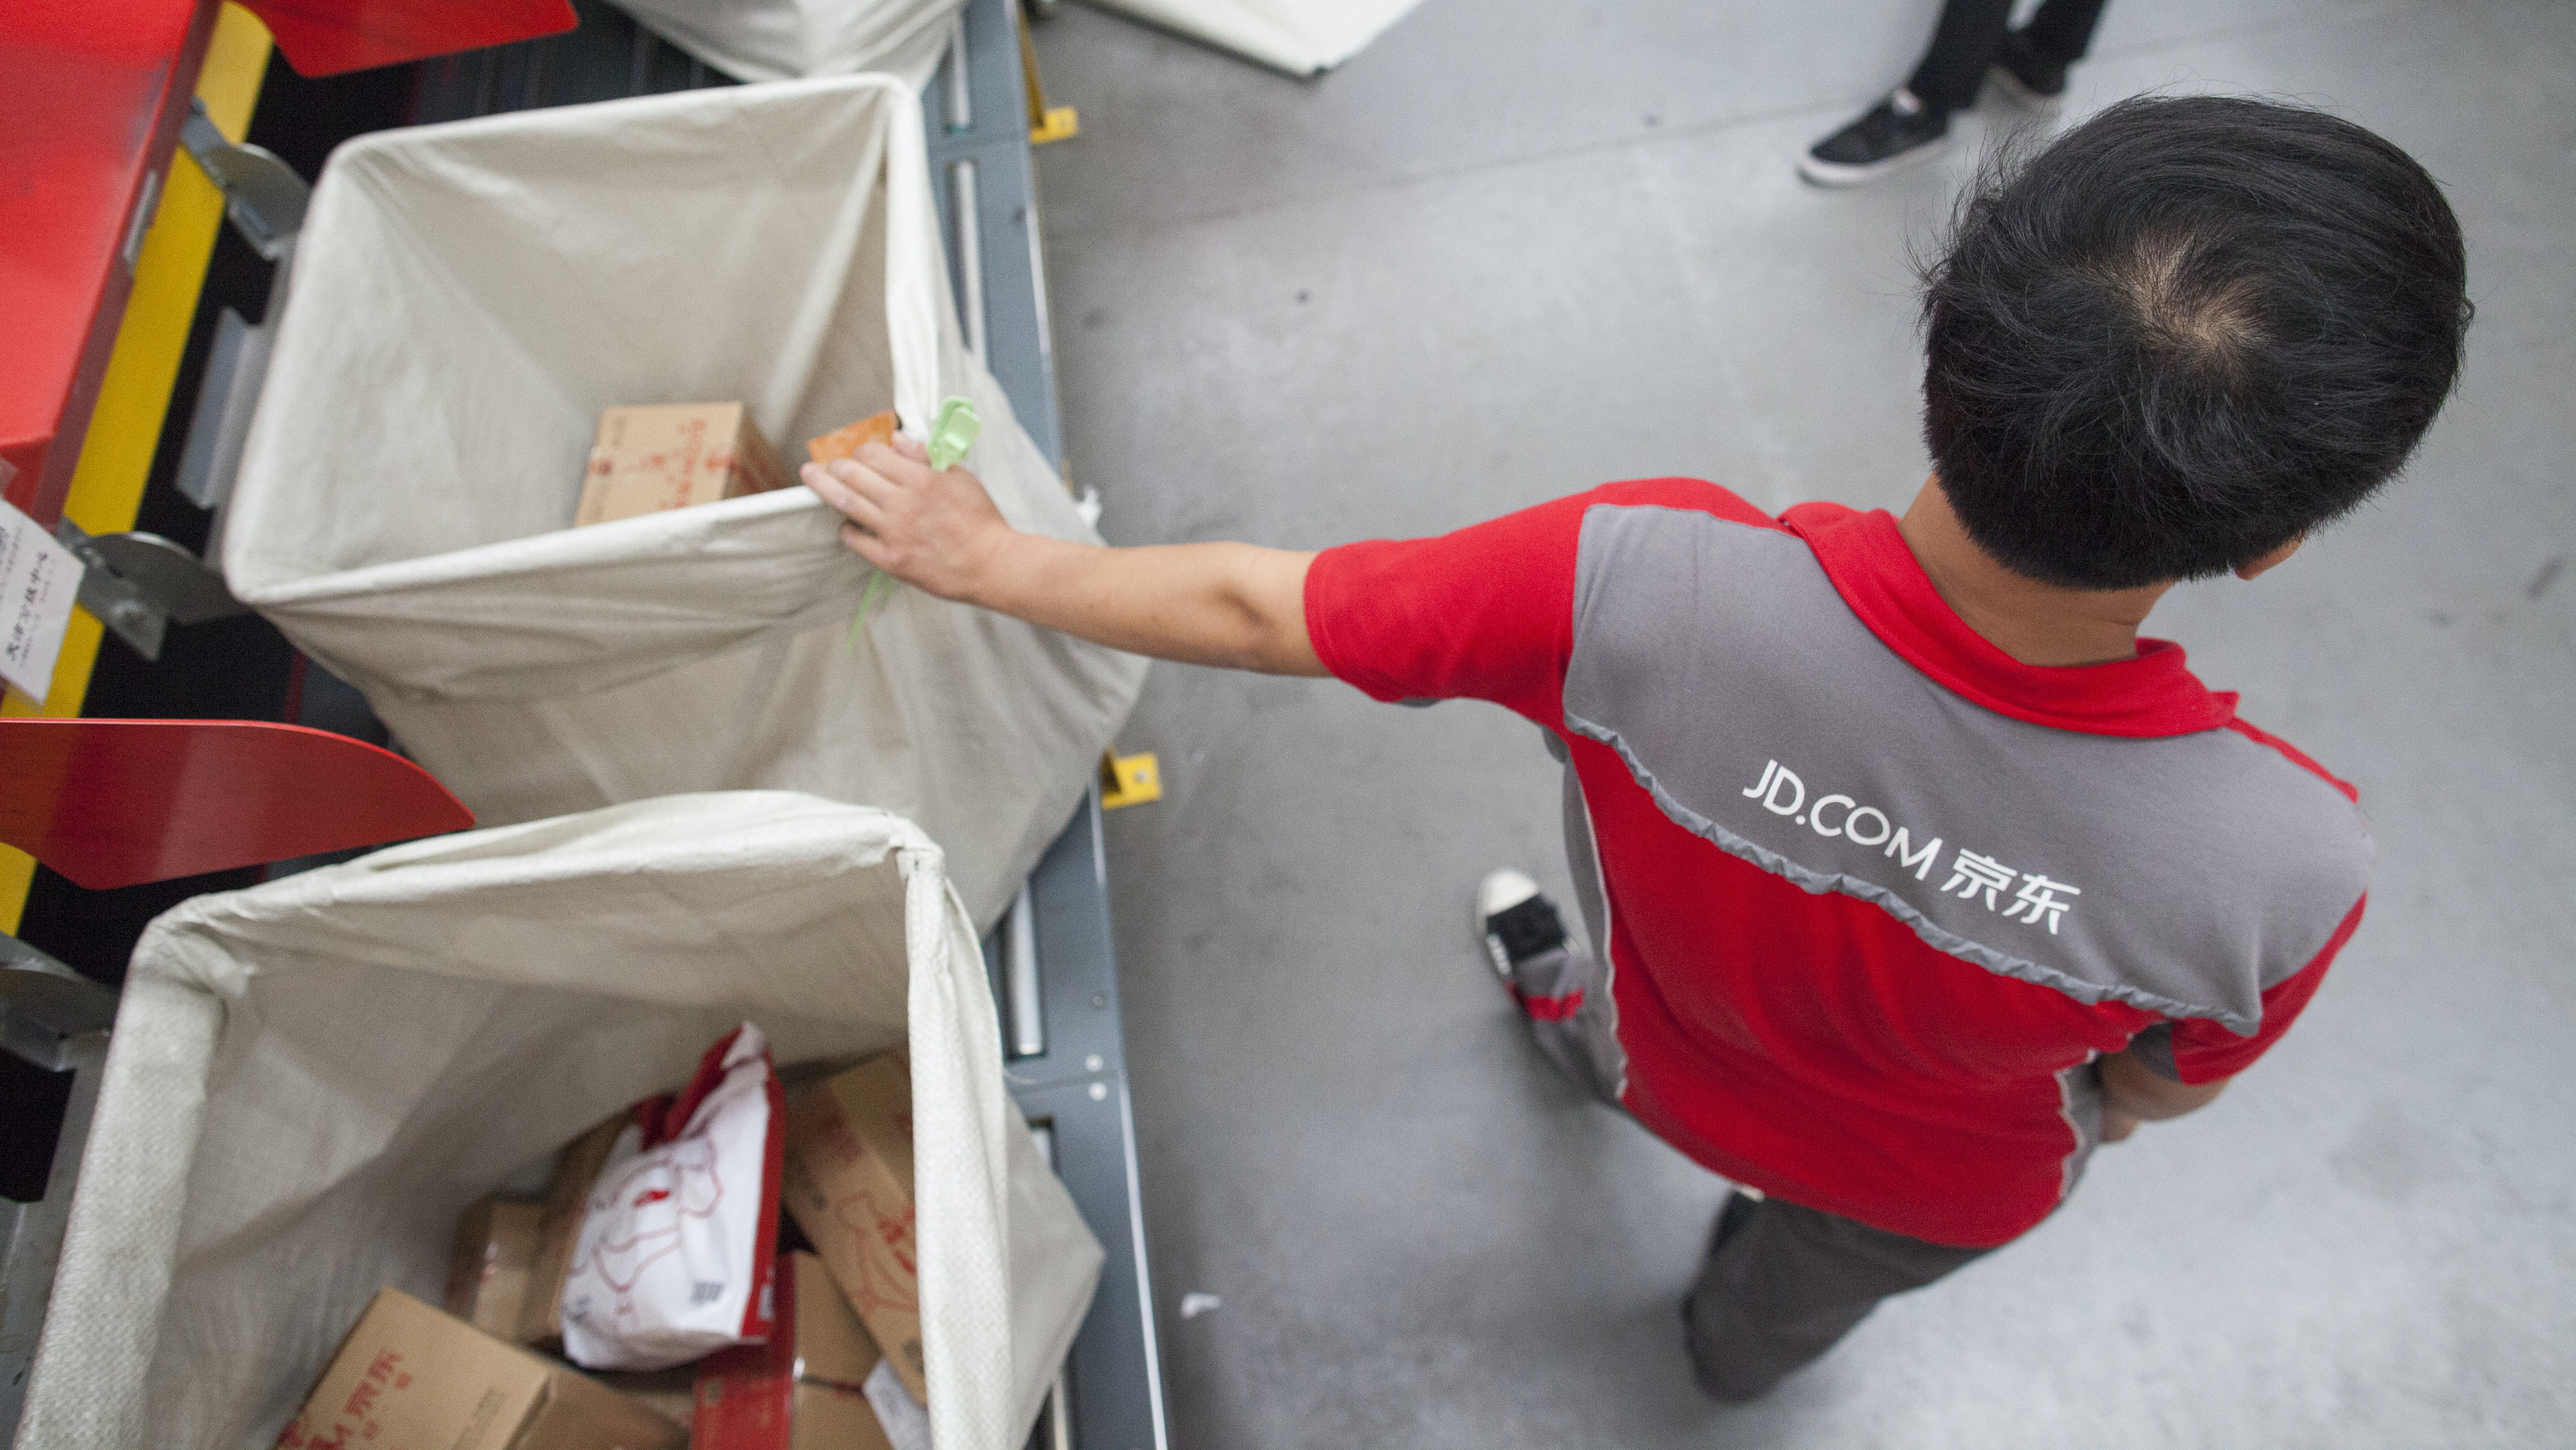 JD.com staff at a warehouse and distribution facility | Source: Shutterstock